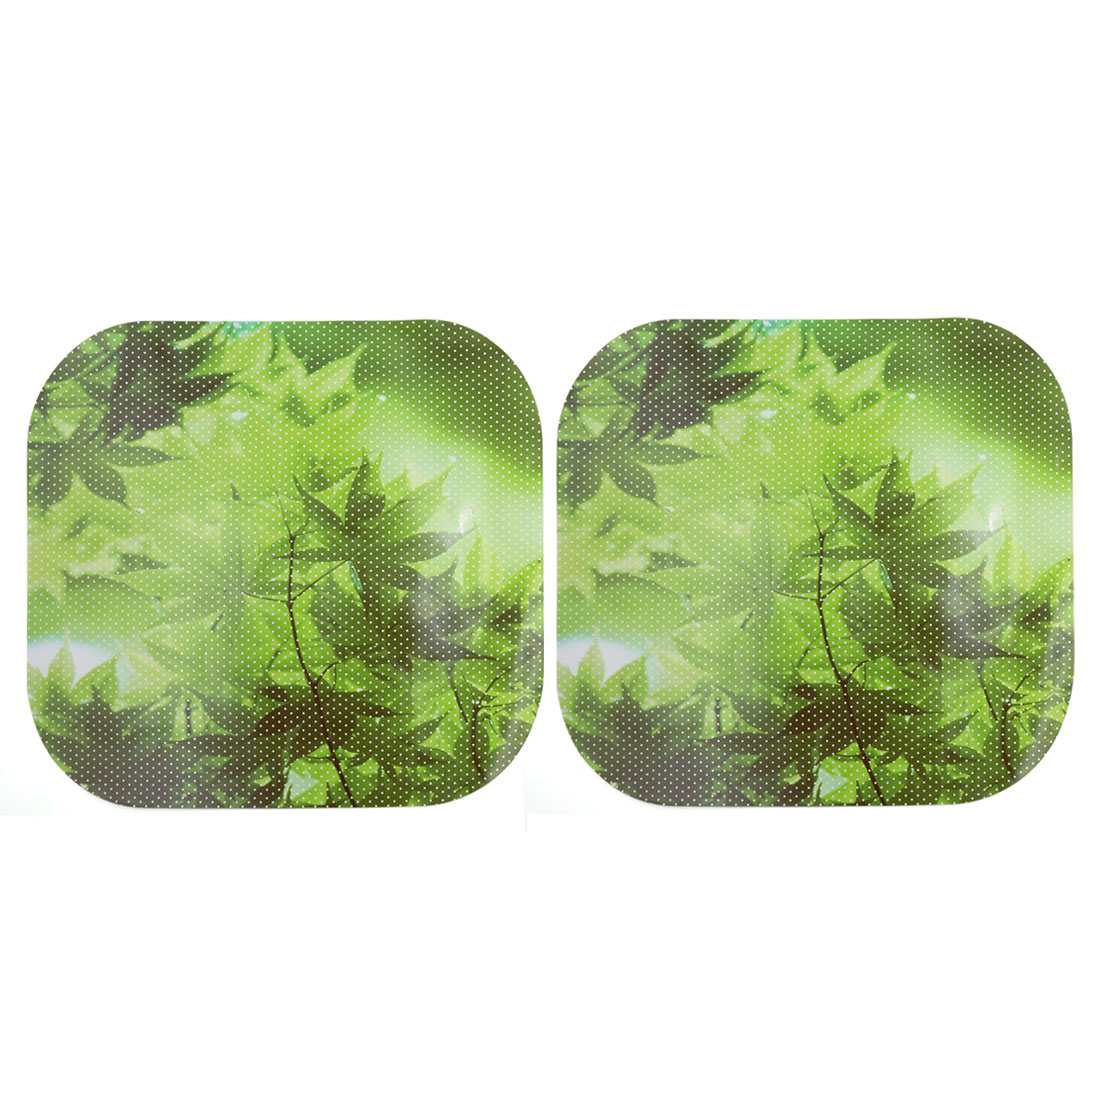 2pcs Green Maple Leaf Pattern Adhesive Car Window Static Sticker 42cm x 33cm